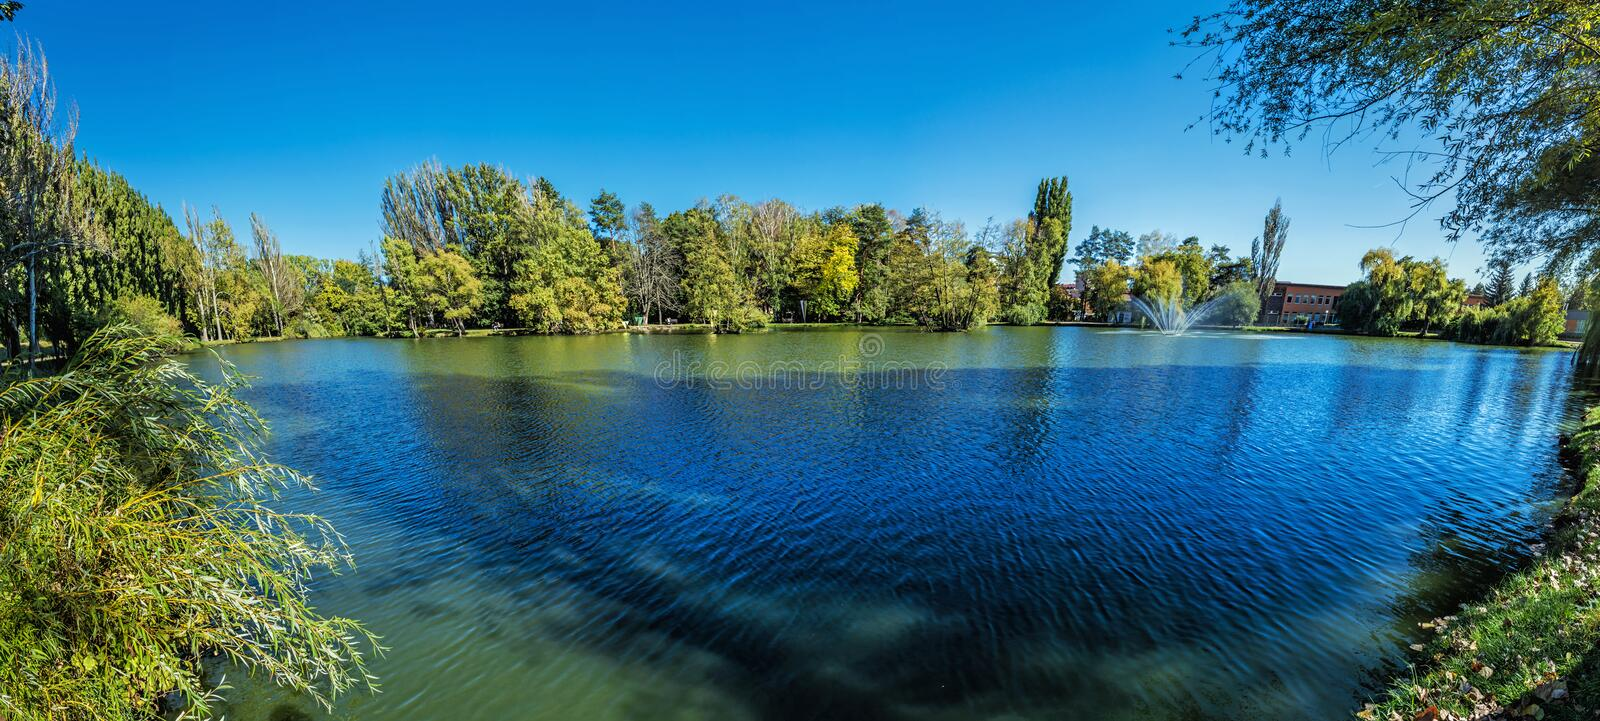 Lake Hangocka, city park, Nitra, Slovakia. Seasonal natural scene. Panoramic photo royalty free stock photos